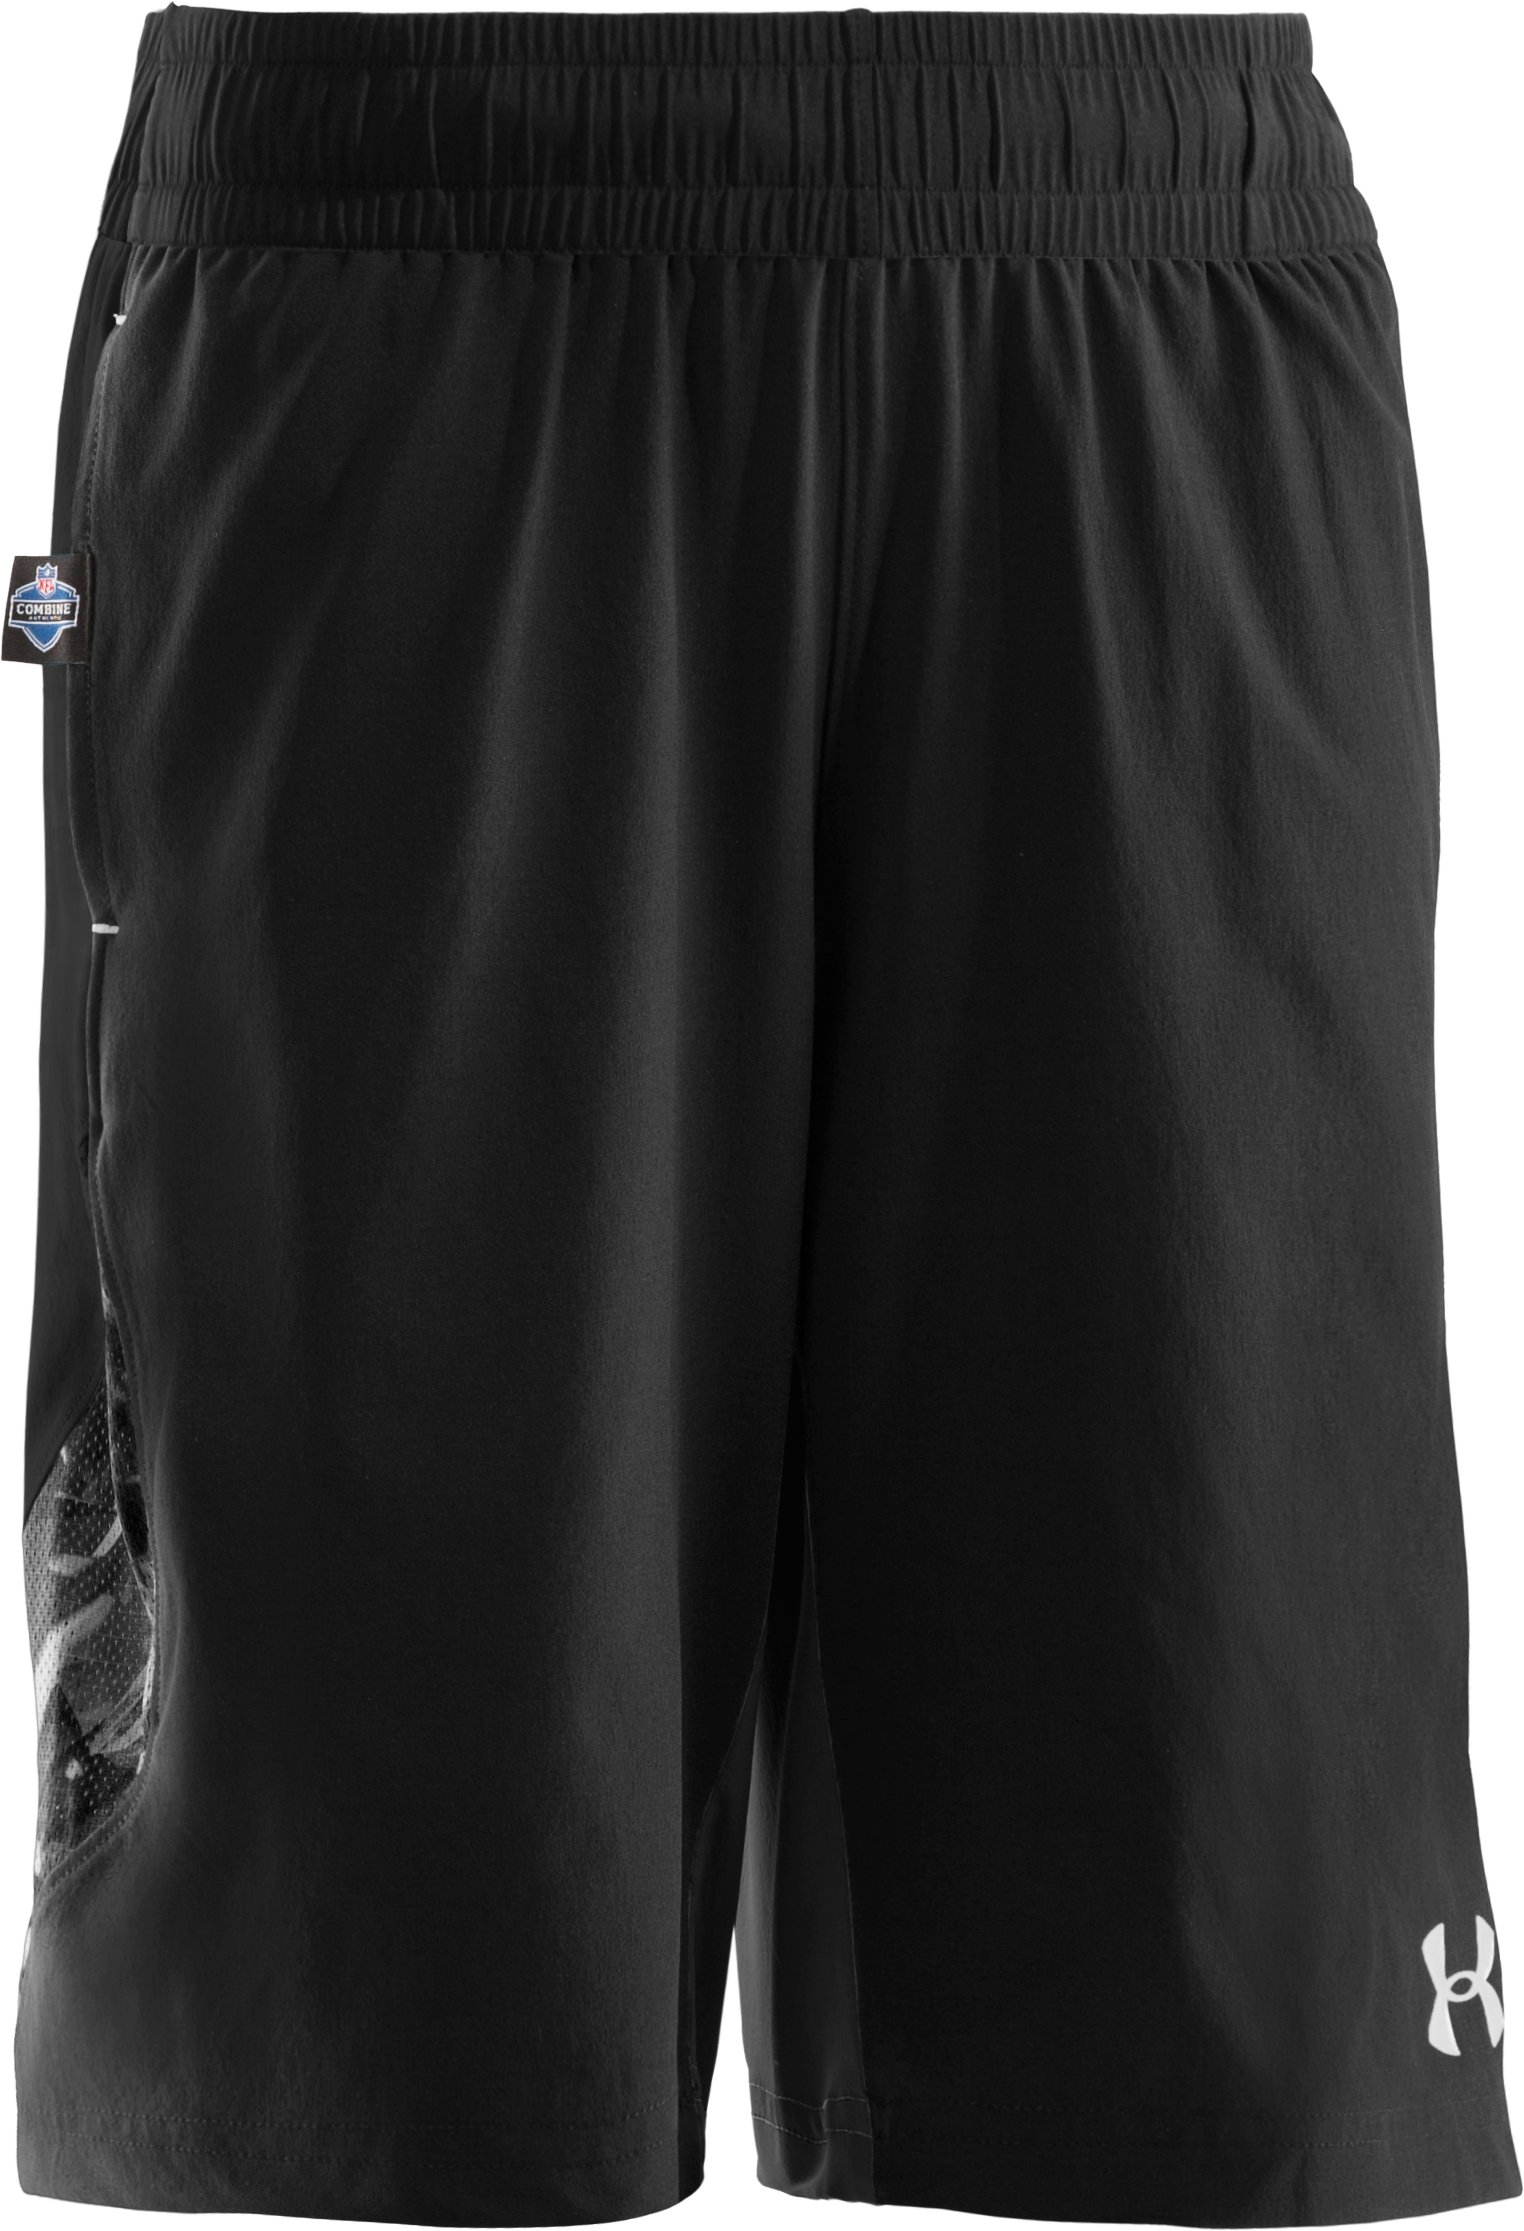 Boys' NFL Combine Authentic Shorts, Black